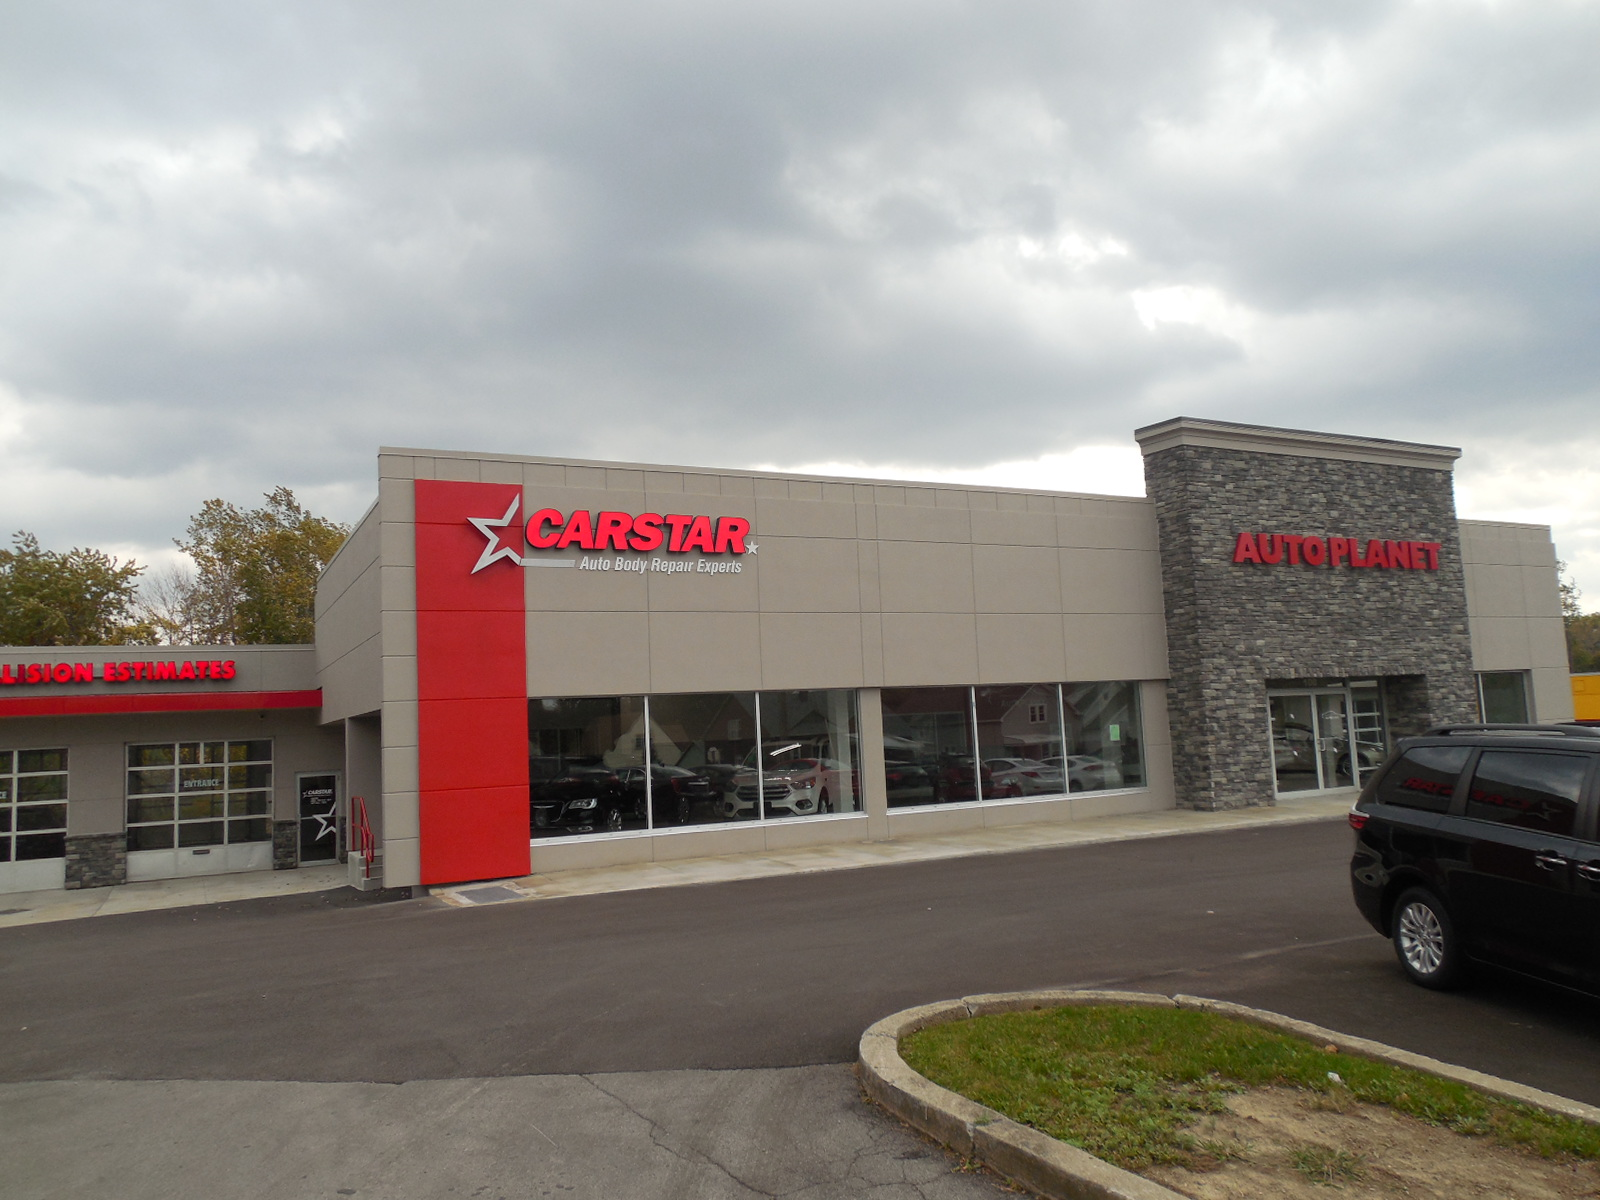 CARSTAR West Seneca Auto Body Repair: Exterior